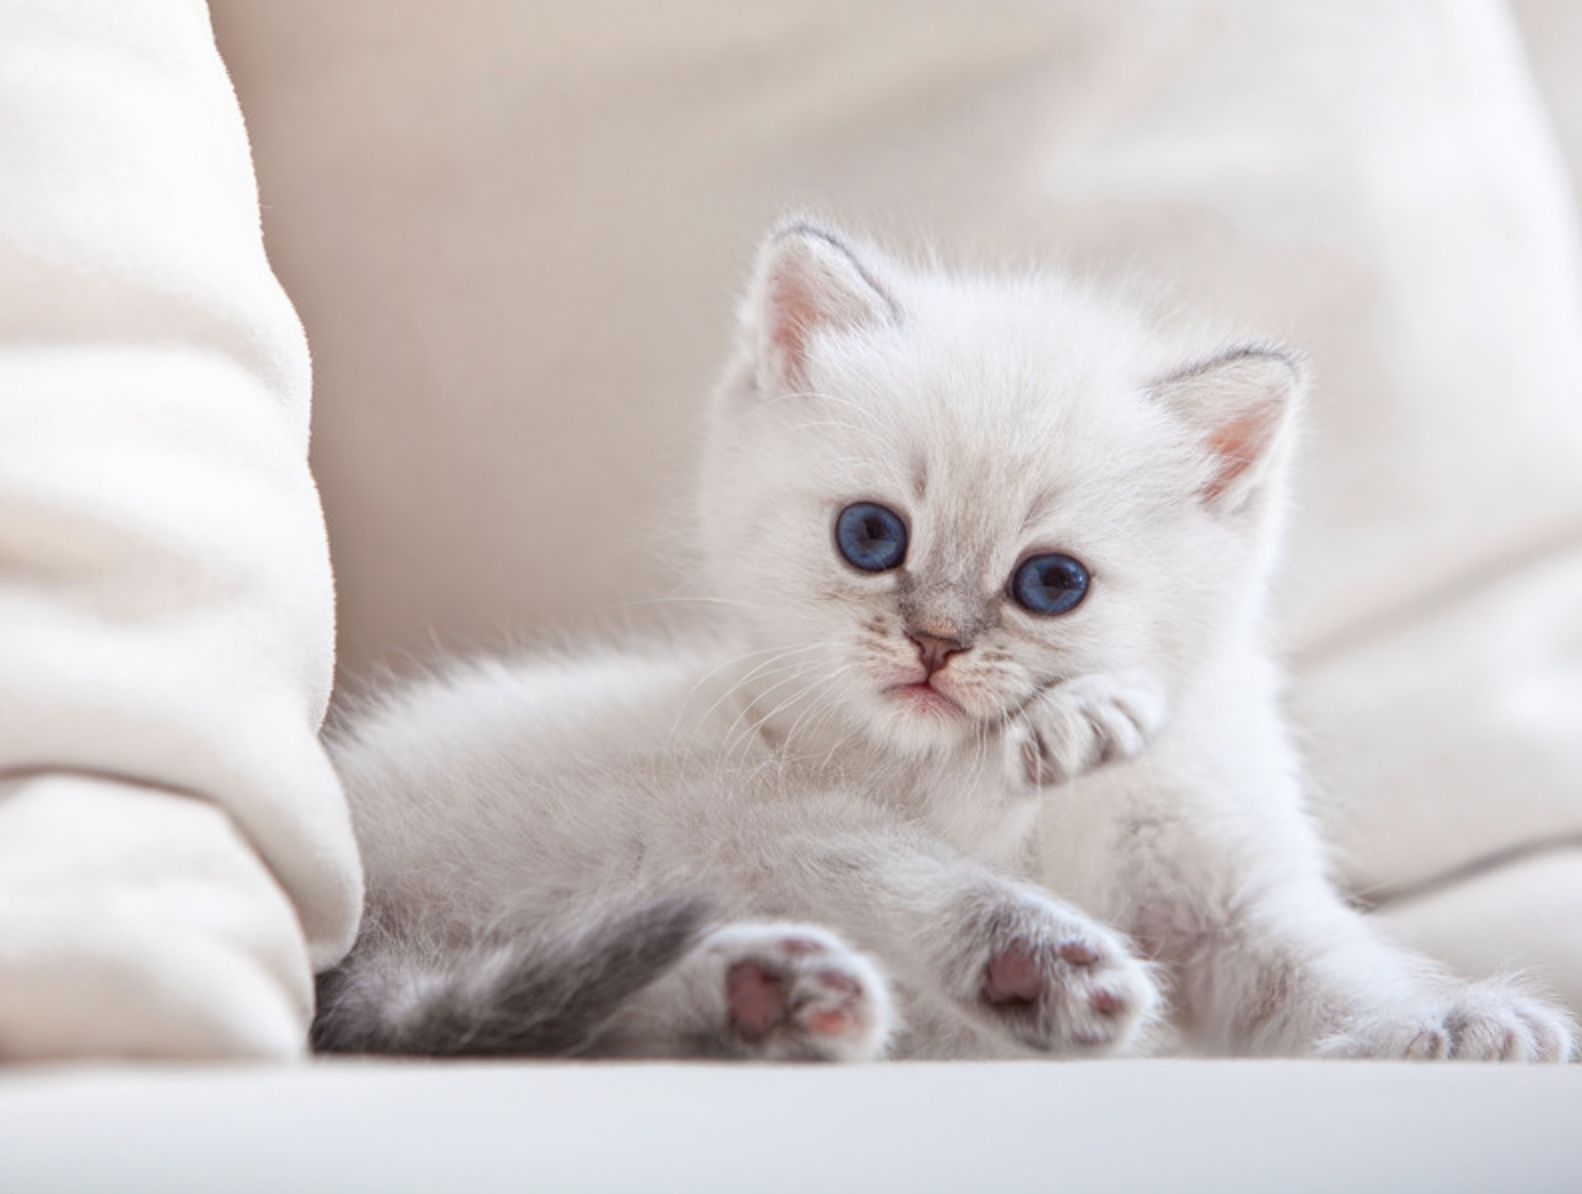 44 Super Cute White Kitten Enjoy Cute Fluffy Kittens Kittens Funny Kittens Cutest